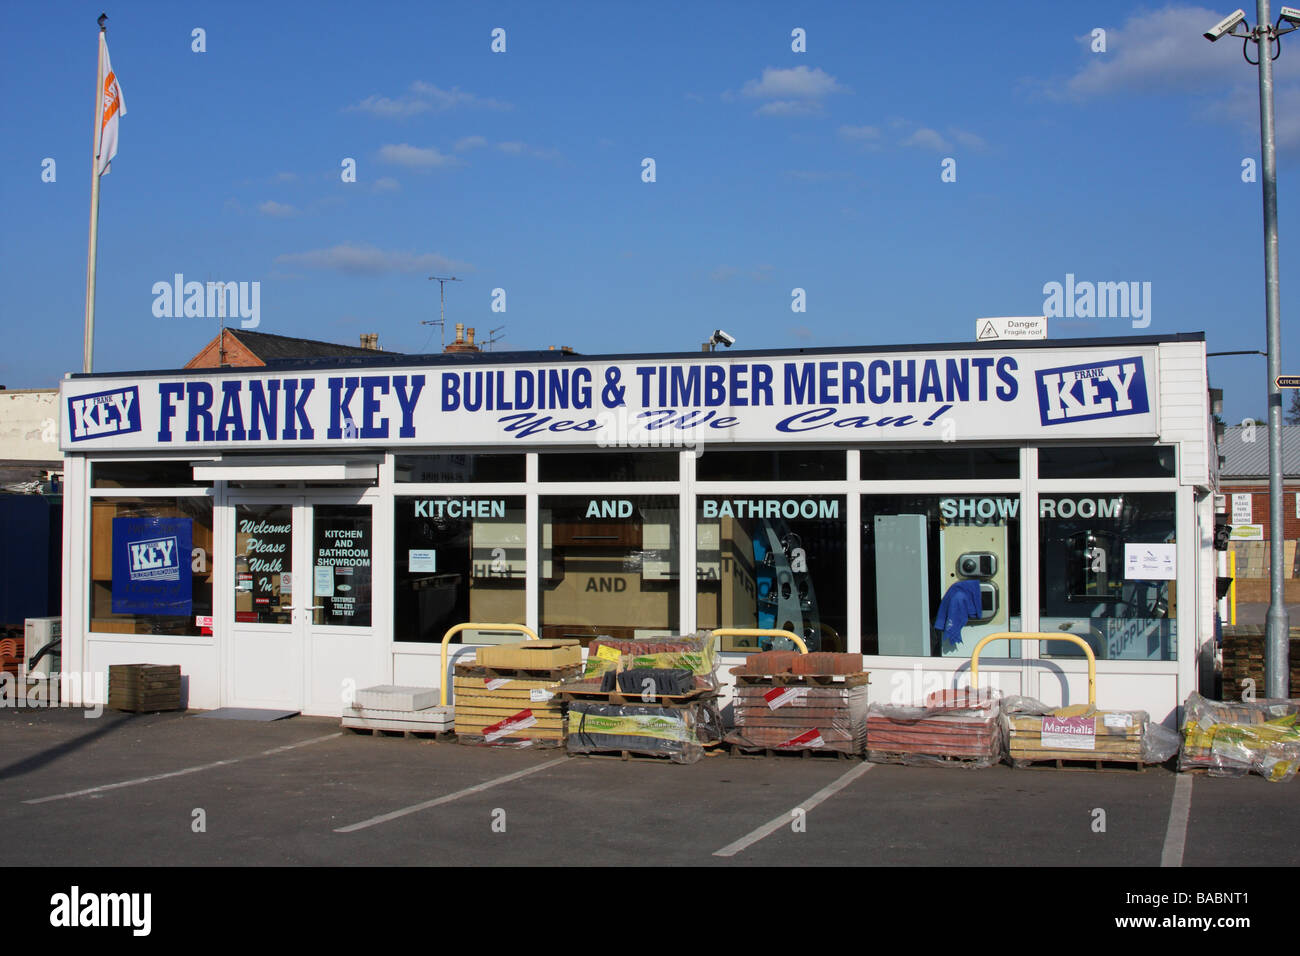 Frank Key builders merchants, Daybrook, Nottingham, England, U.K - Stock Image